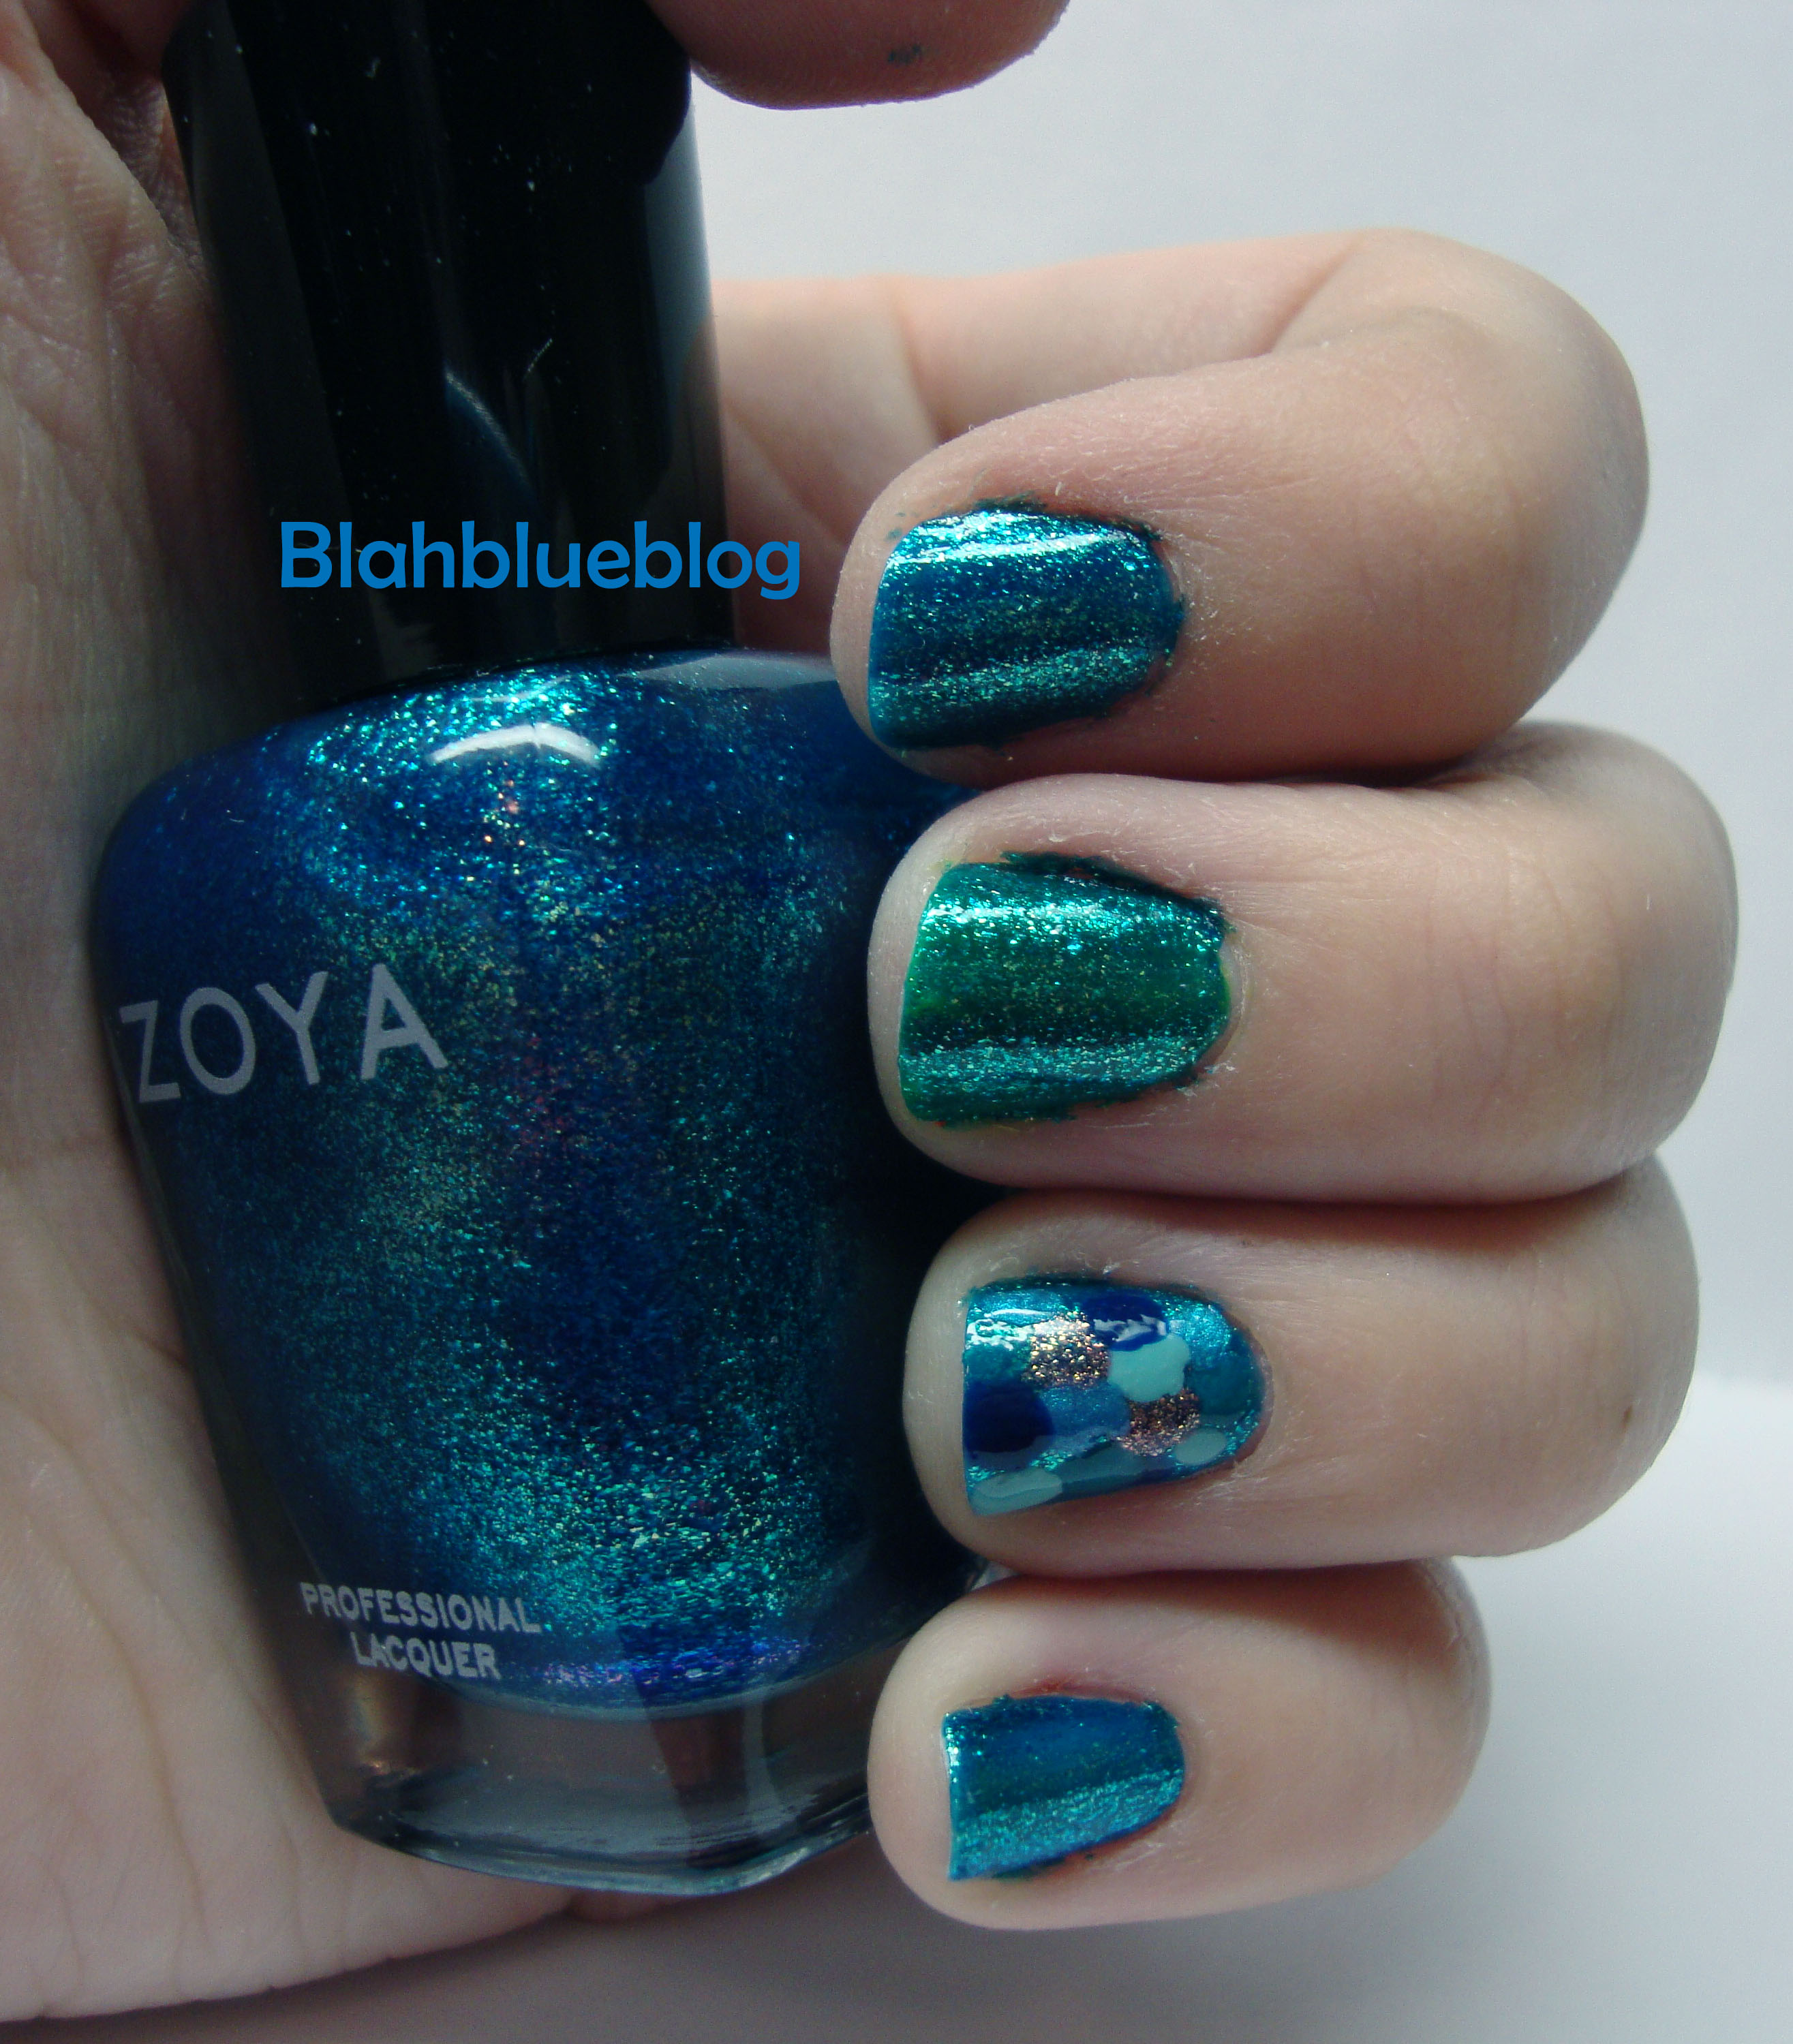 Fish scale nail art blahblueblog mermaid nails prinsesfo Choice Image